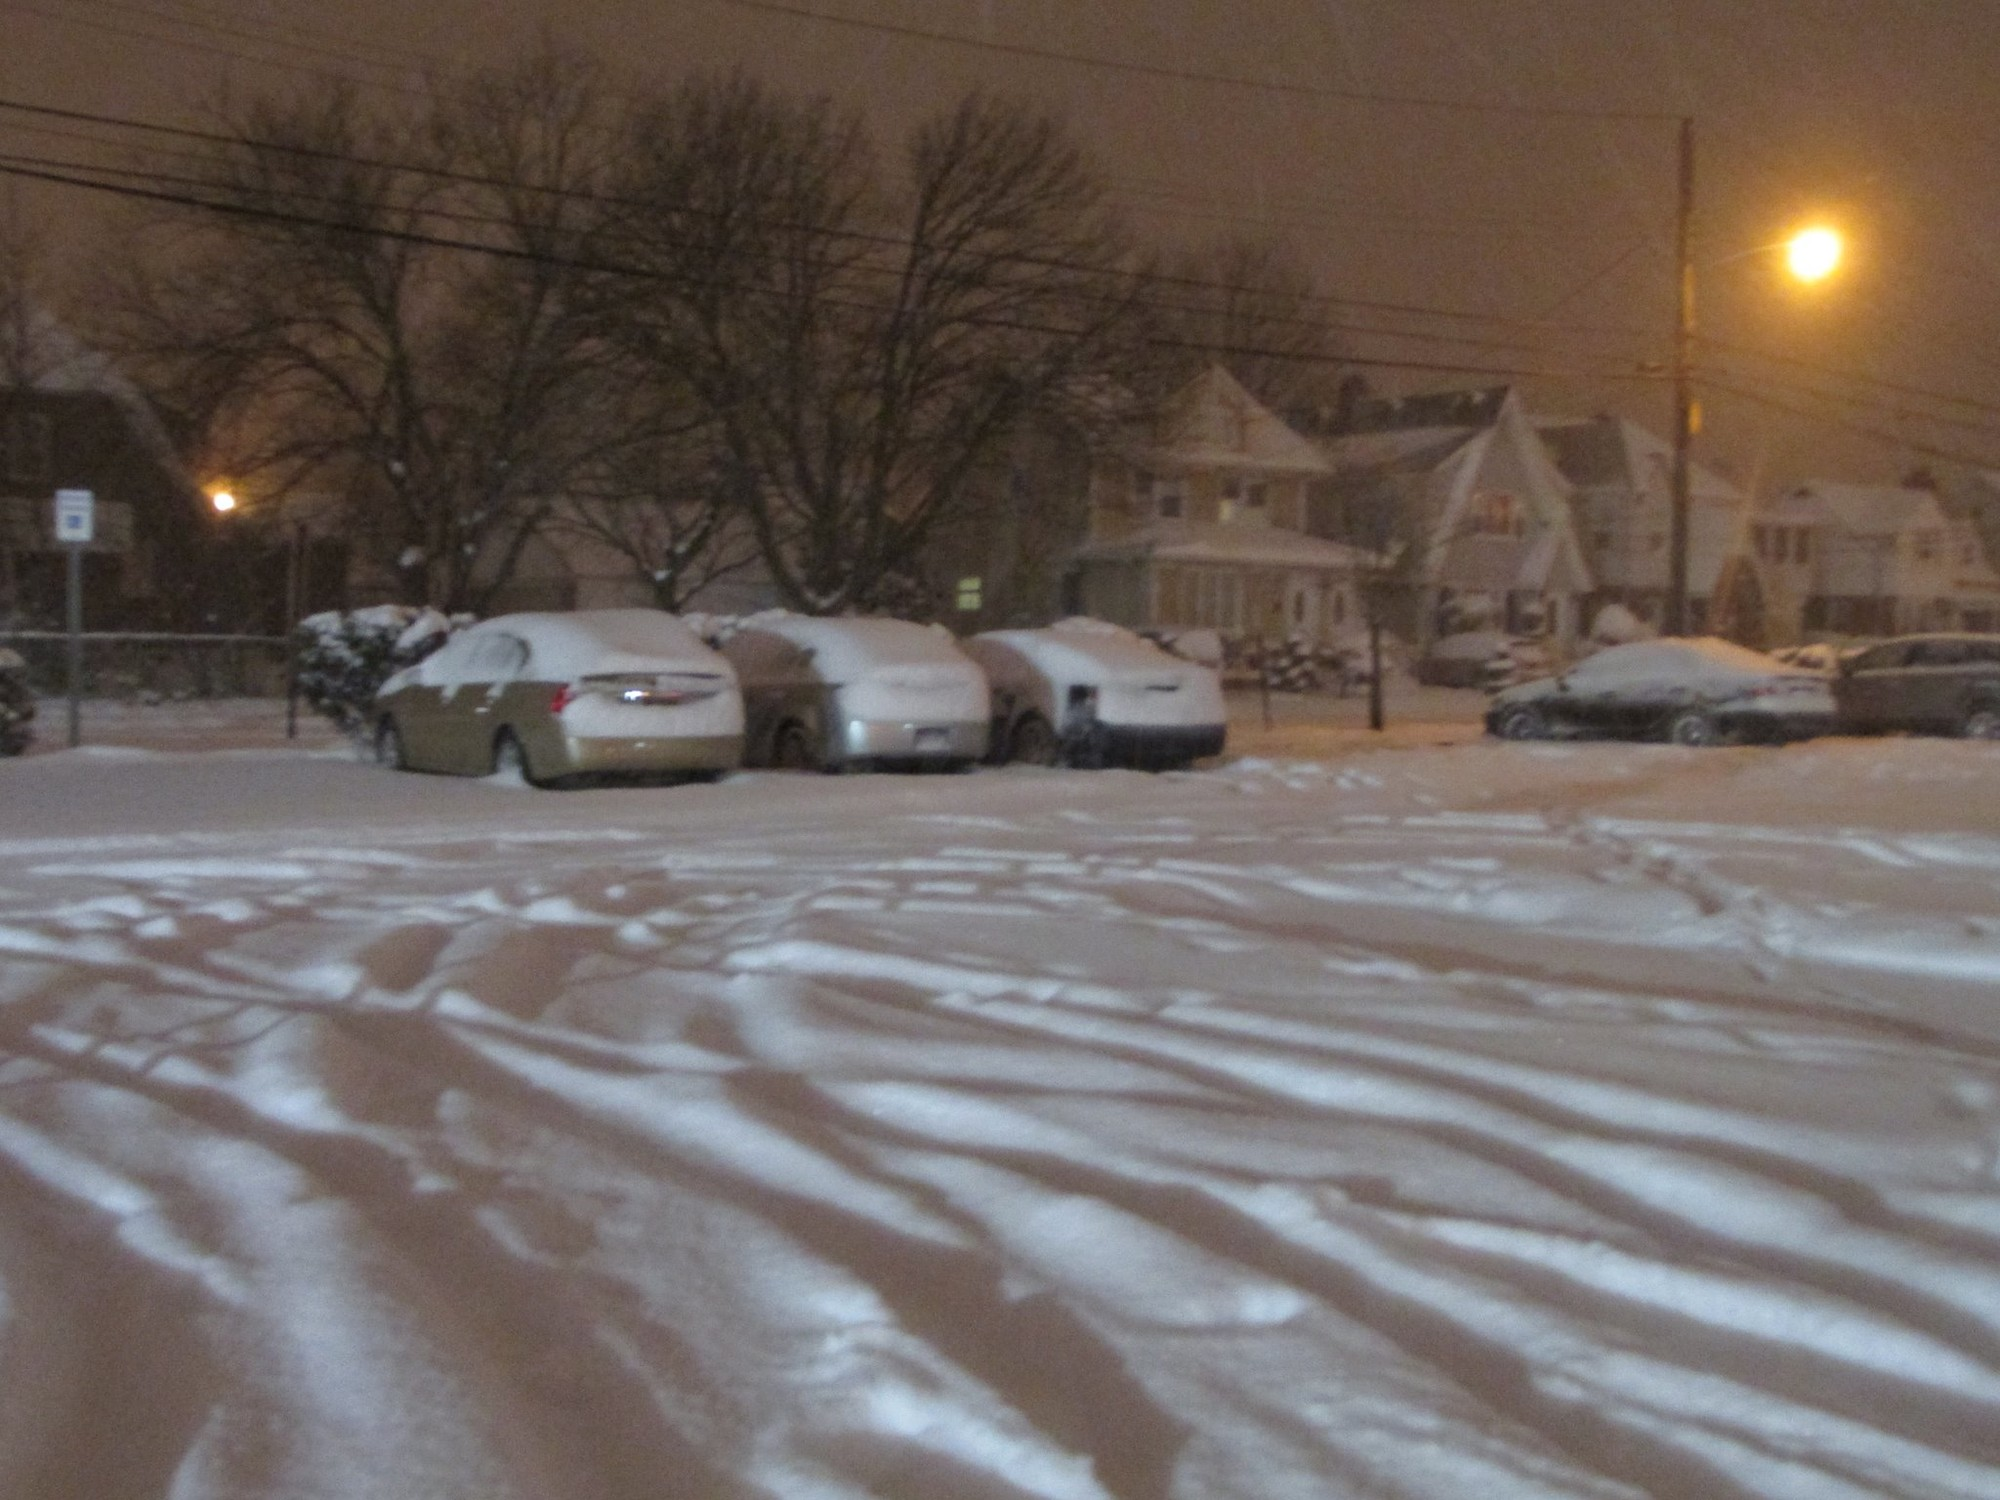 Several cars were snowed in at a municipal lot in Valley Stream.